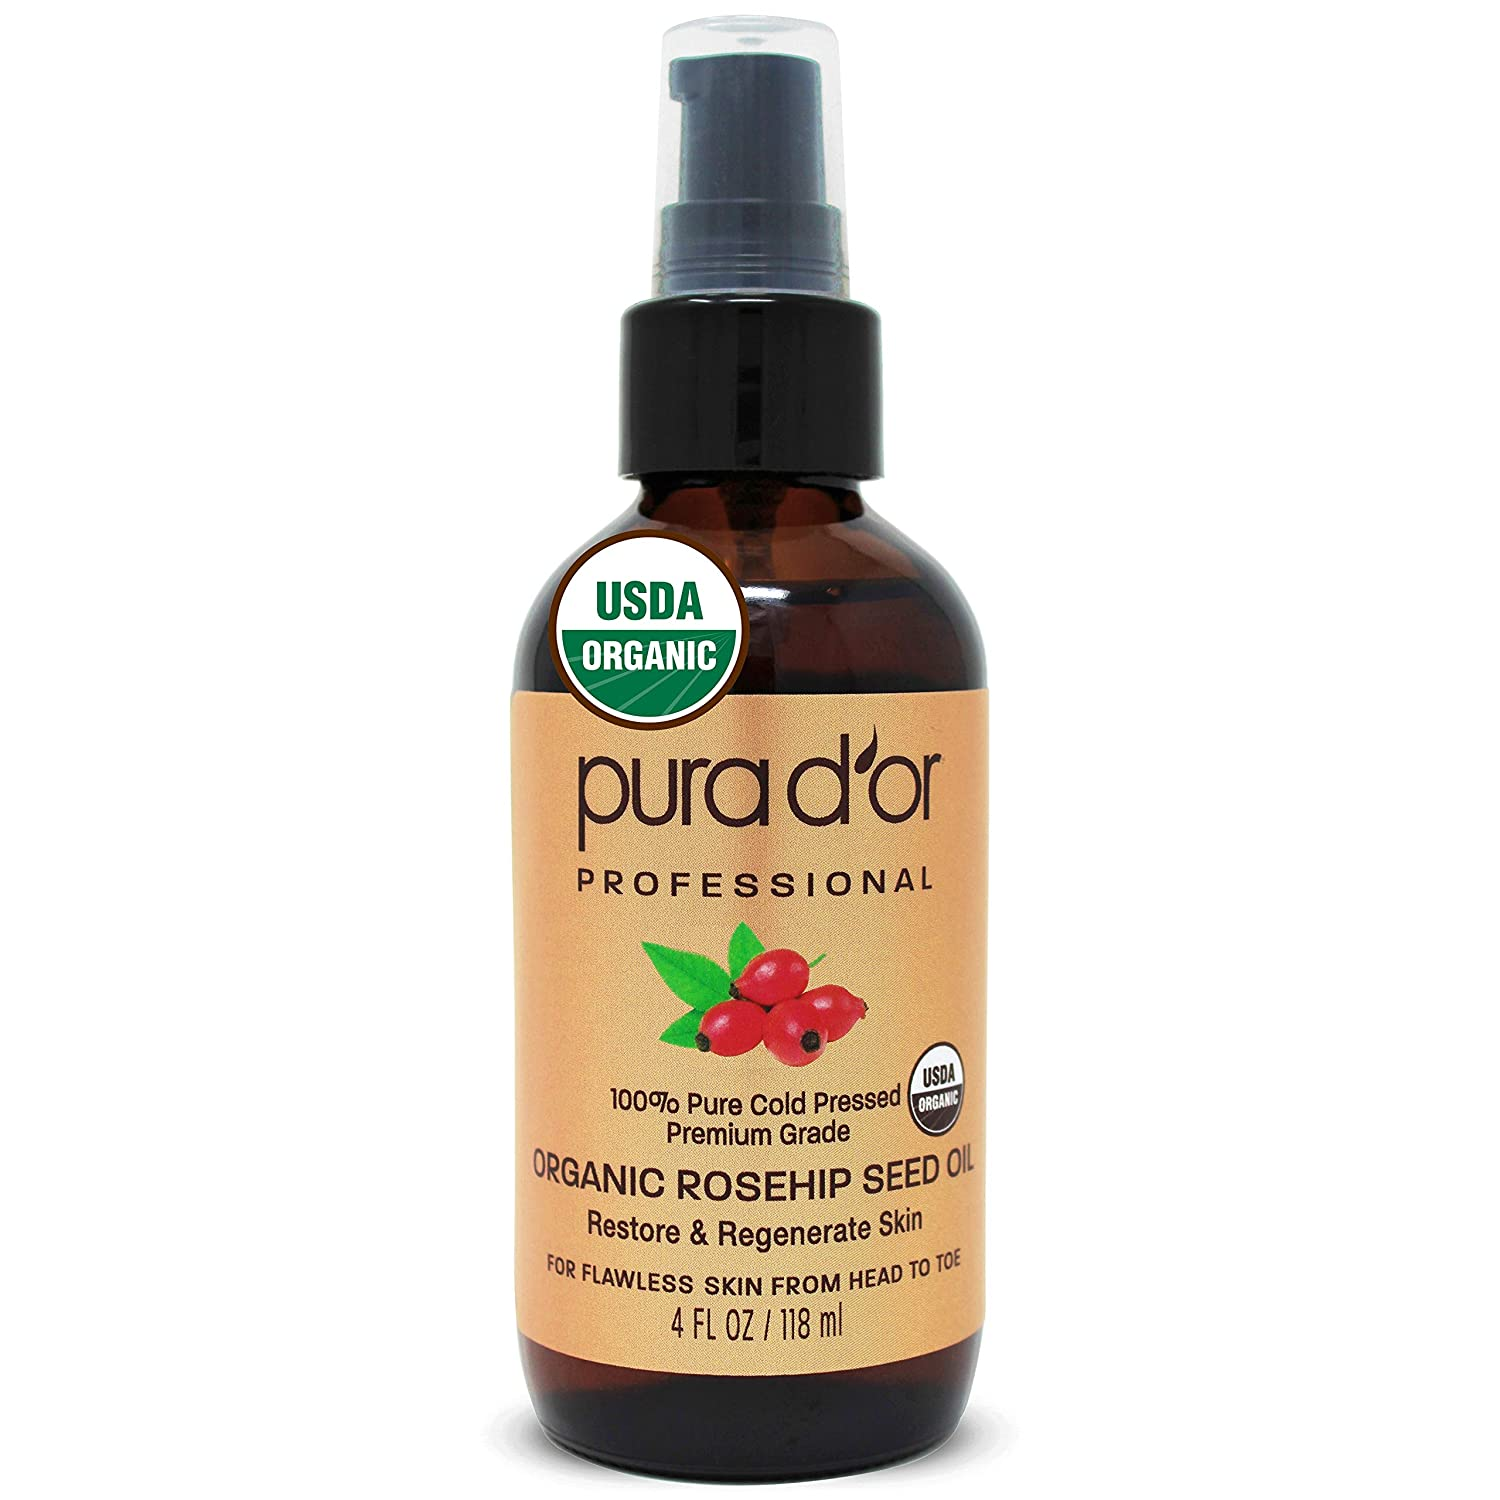 PURA D'OR Organic Rosehip Seed Oil (4oz / 118mL) 100% Pure Cold Pressed USDA Certified Organic, All Natural Anti-Aging Moisturizer Treatment for Face, Hair, Skin, Nails, Men-Women